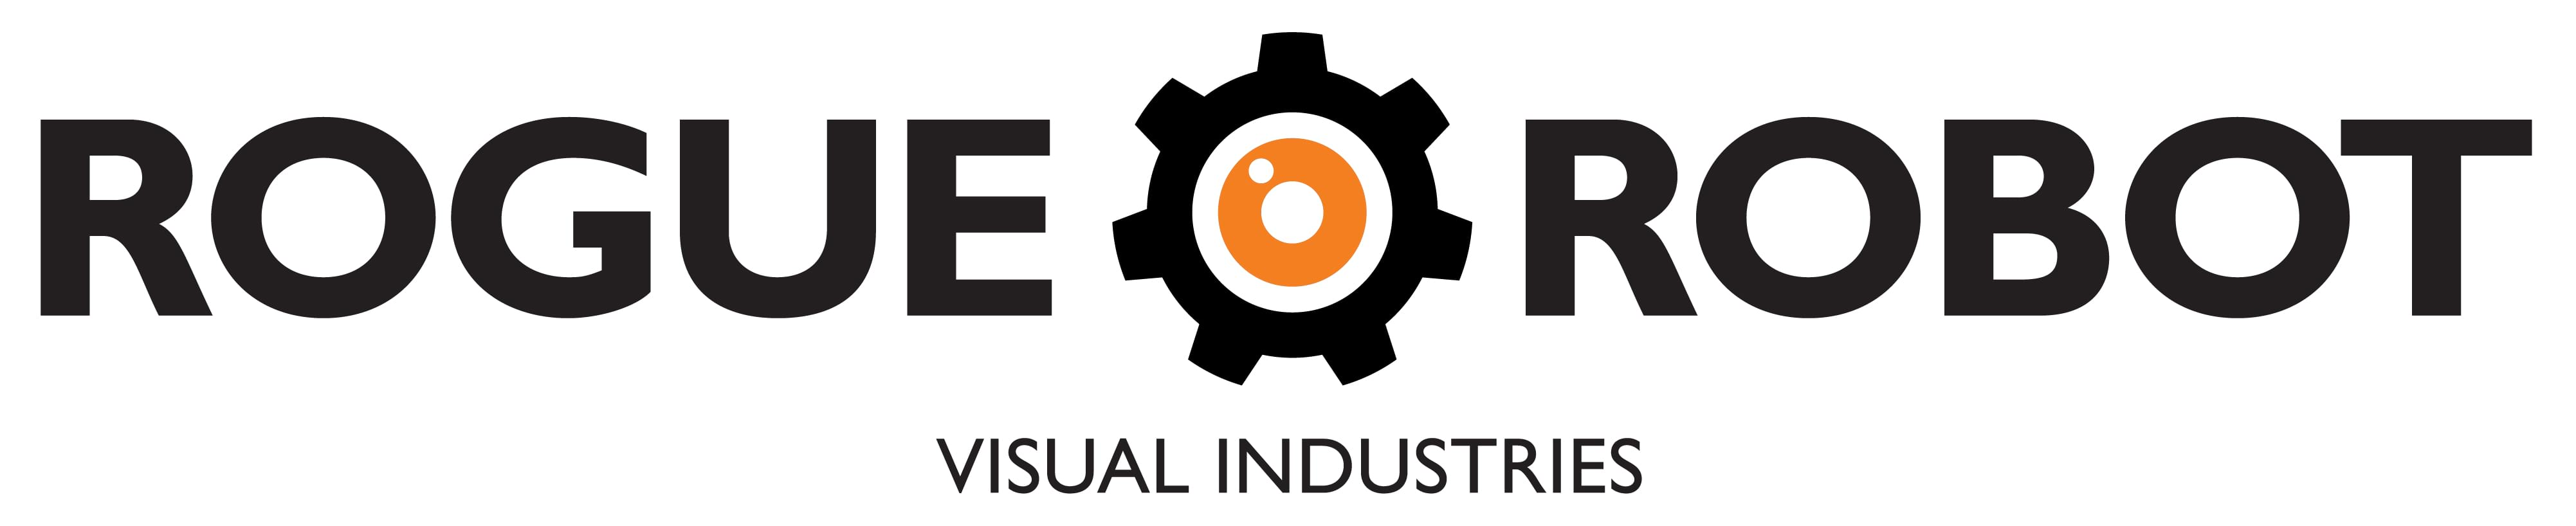 Rogue Robot Visual Industries